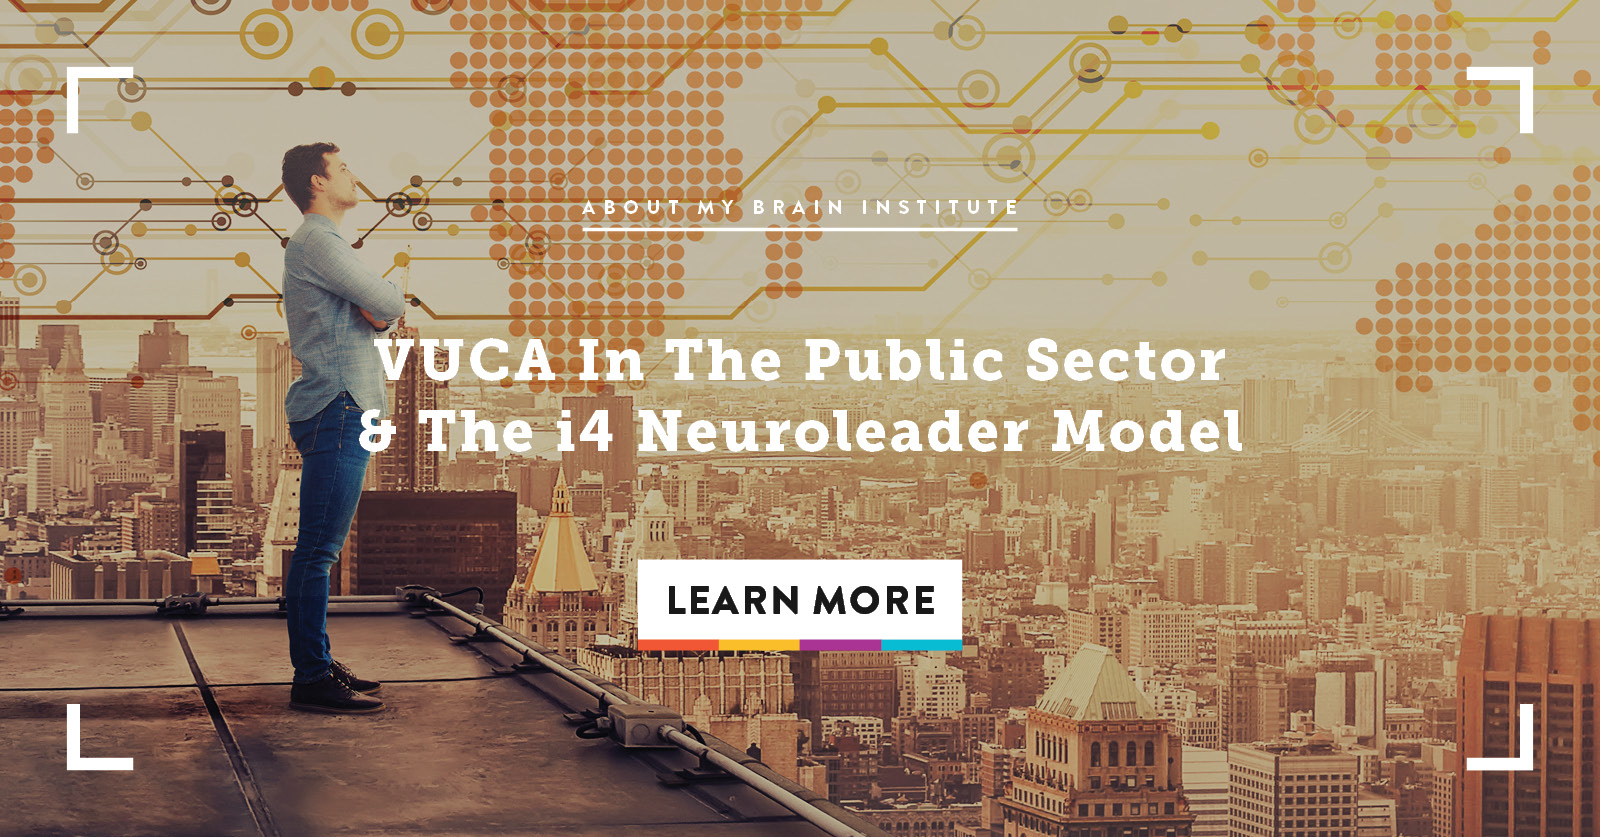 VUCA In The Public Sector & The i4 Neuroleader Model